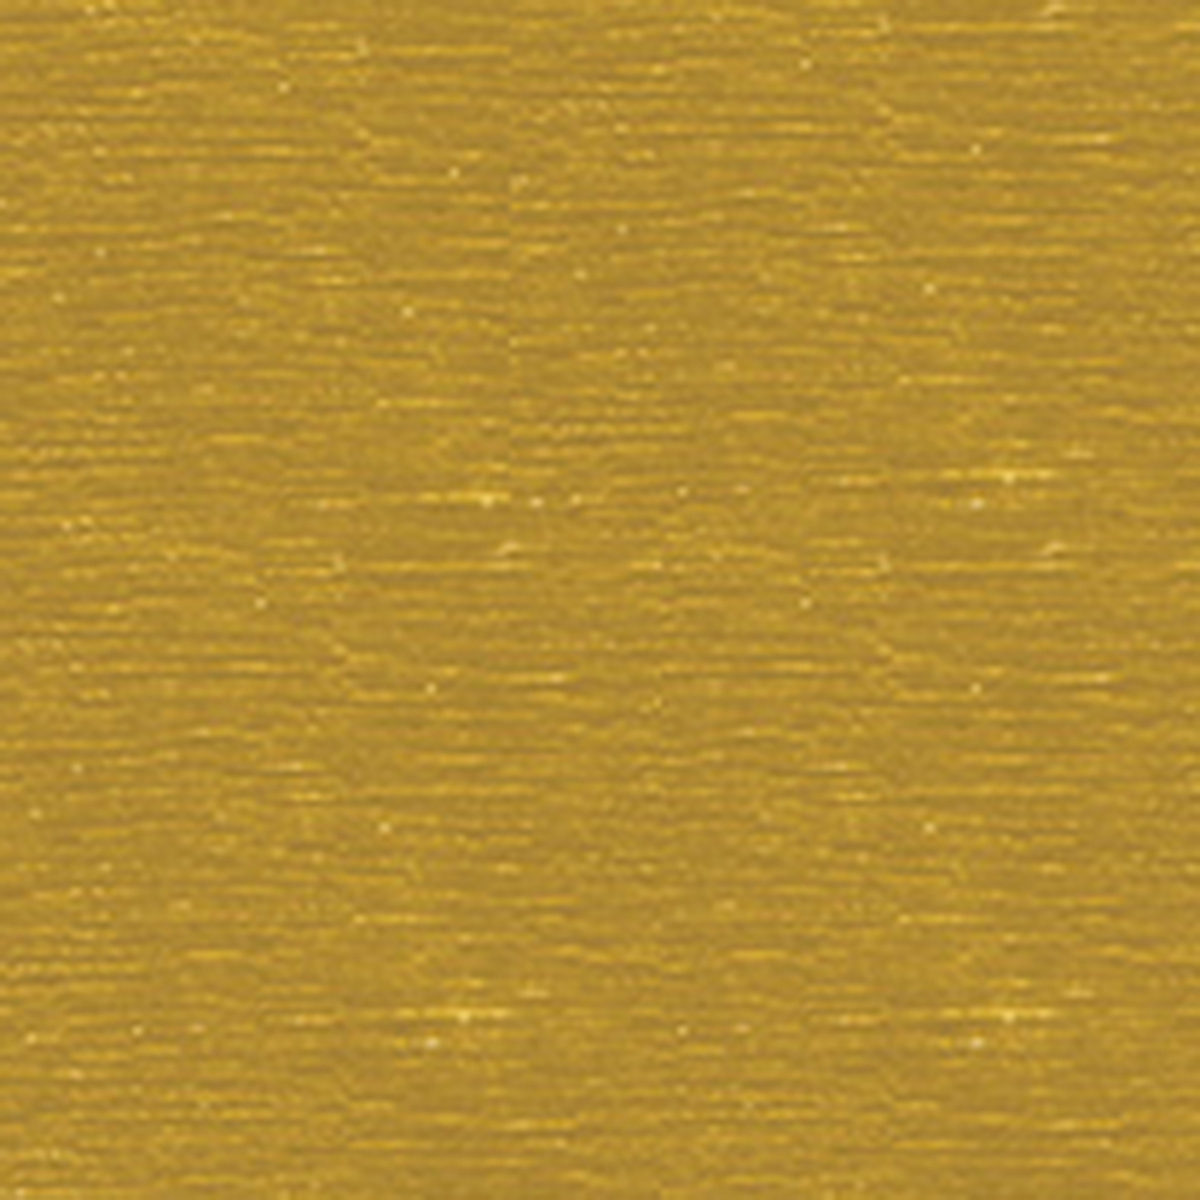 textured gold metallic cardstoc